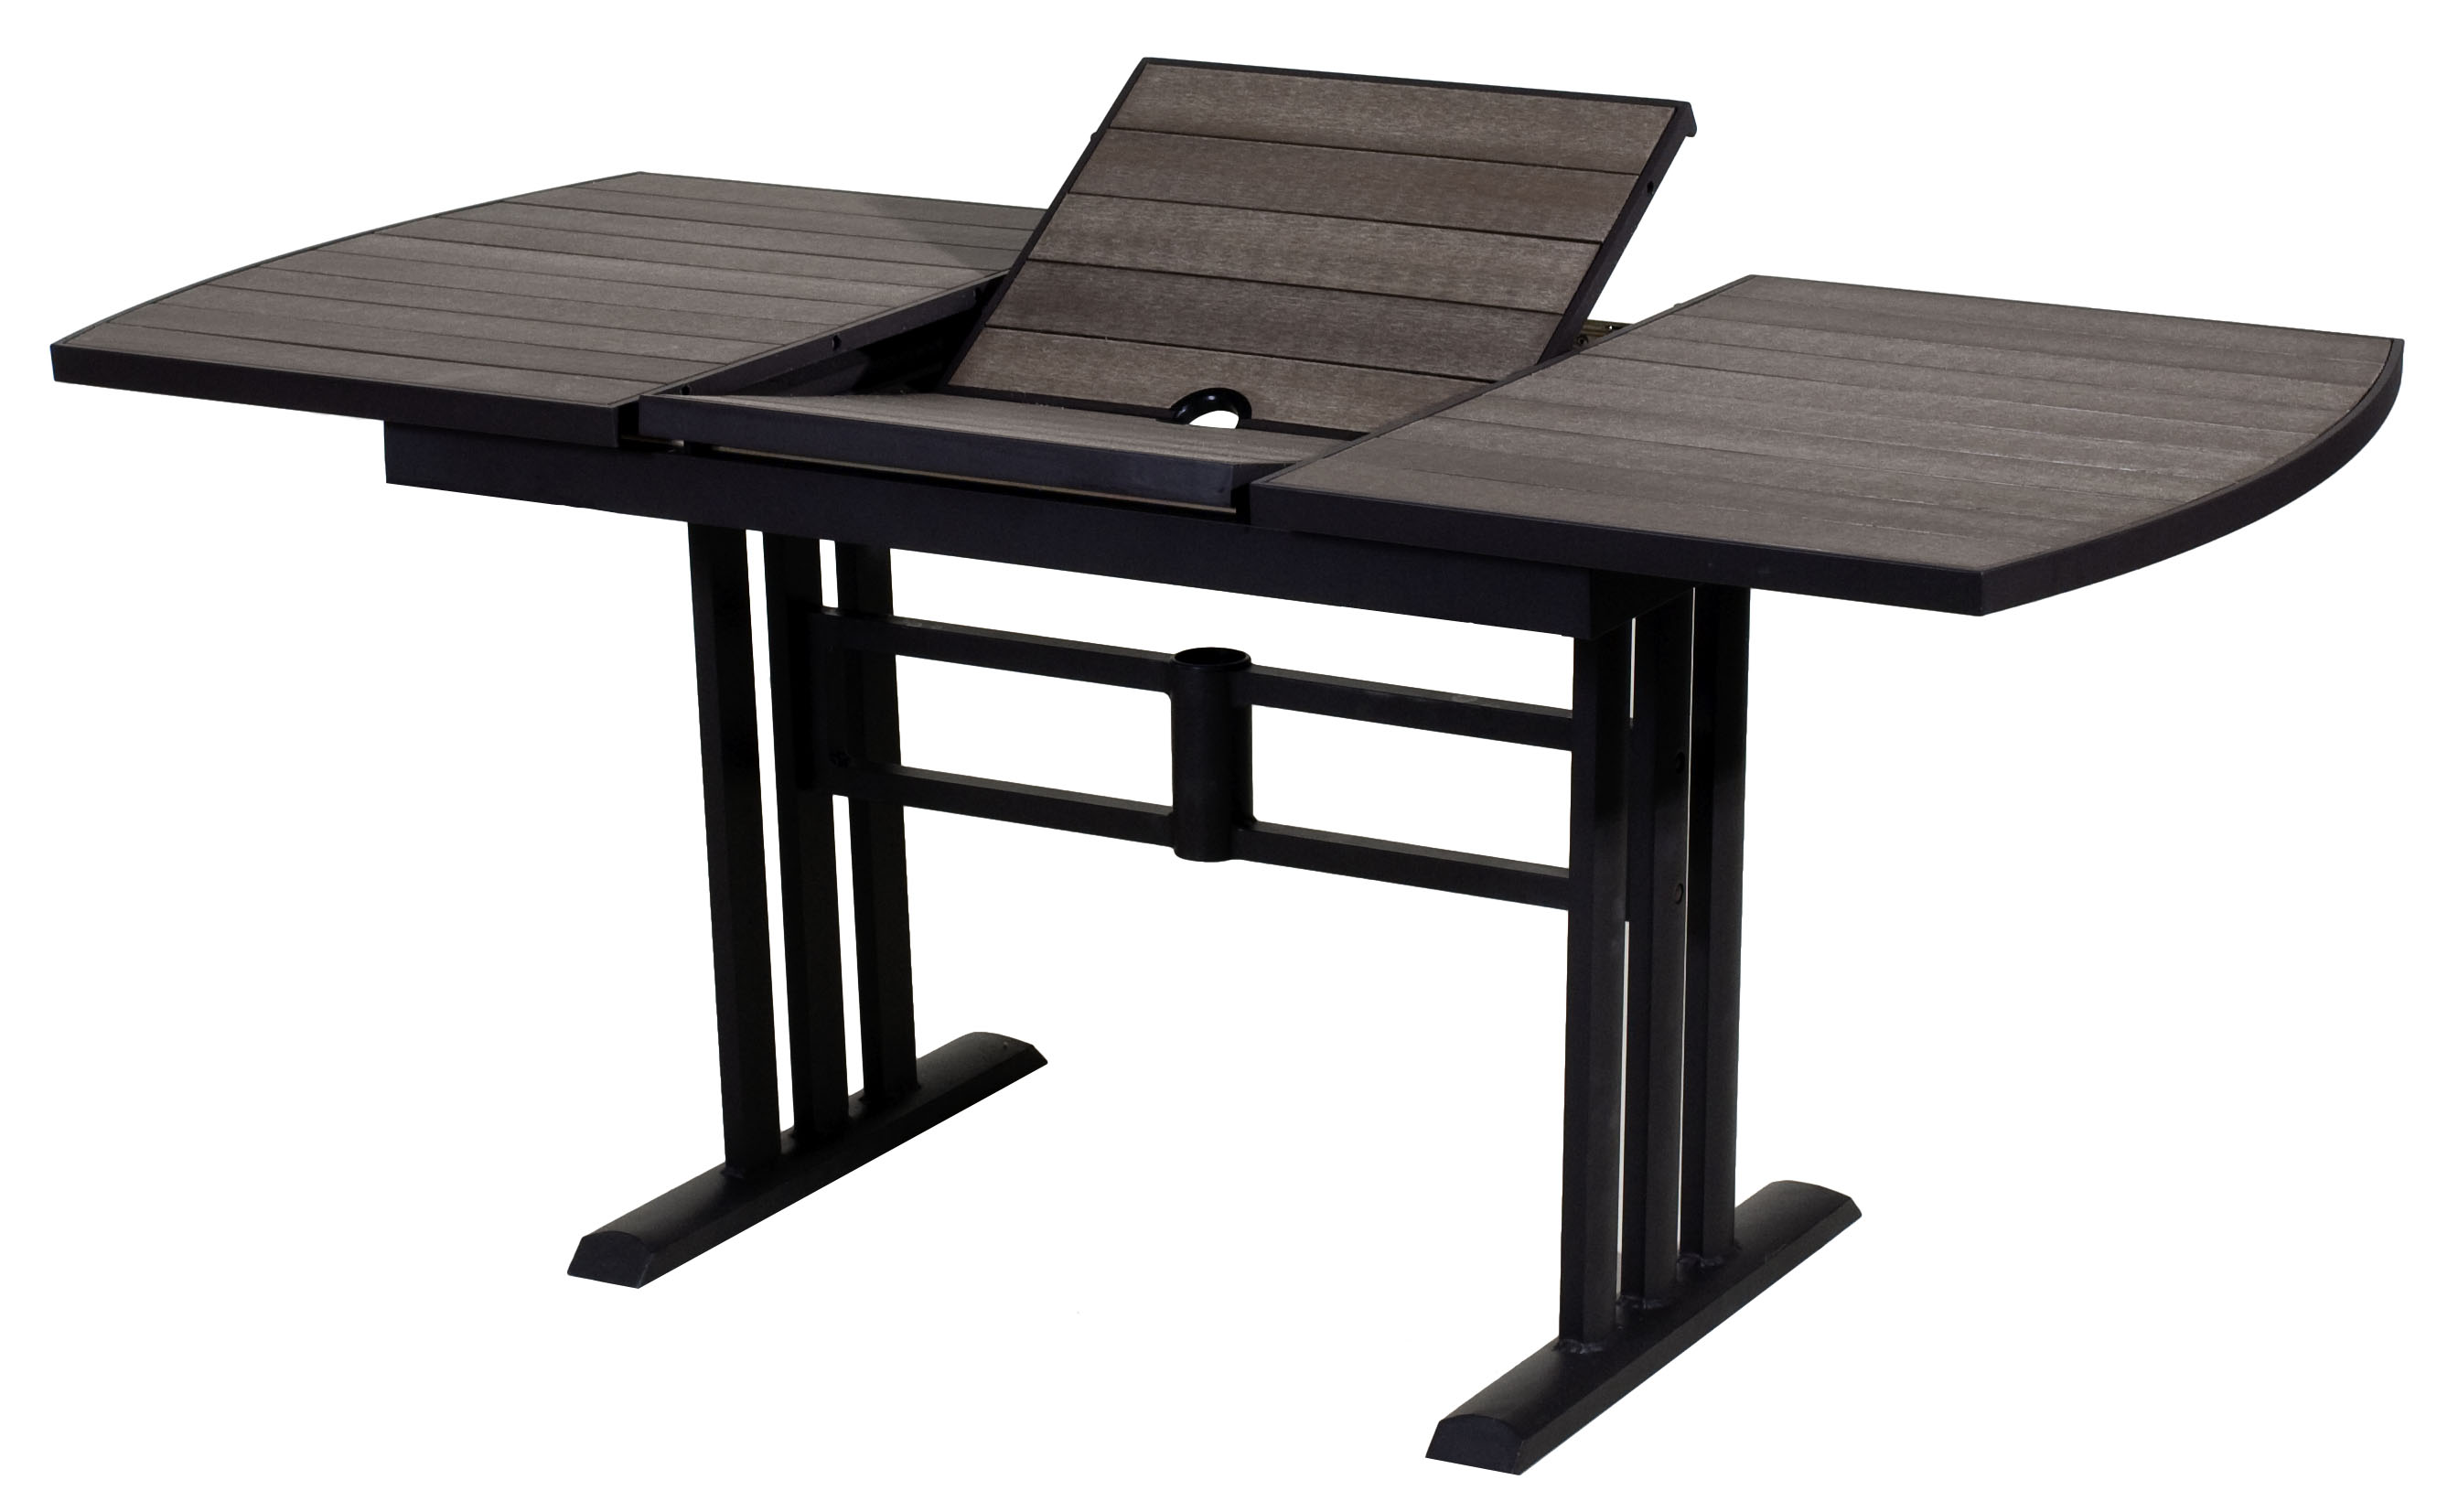 Table jardin extensible pas cher for Table ovale extensible pas cher